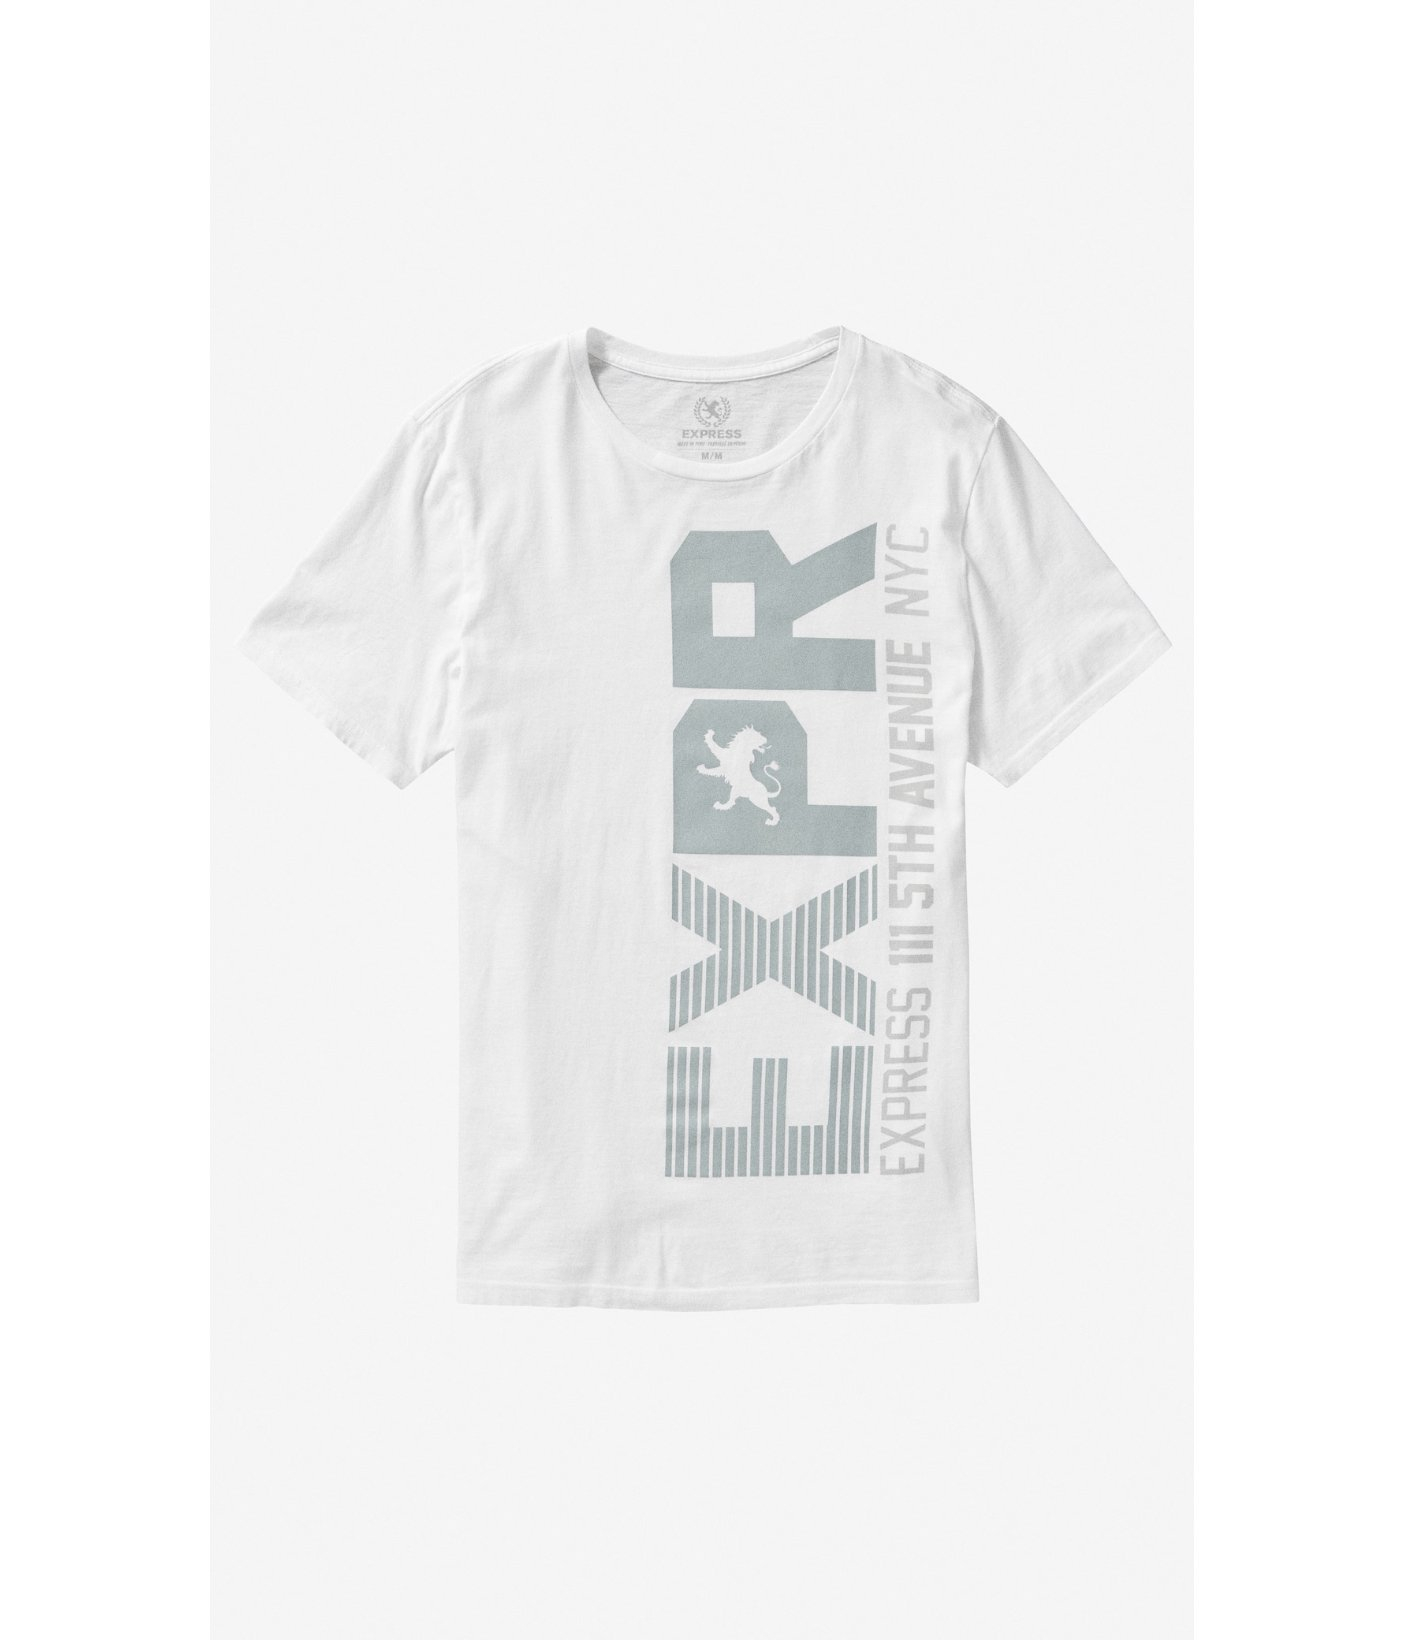 Lyst - Express Exp White Vertical Graphic Tee in White for Men 6b9a714a67